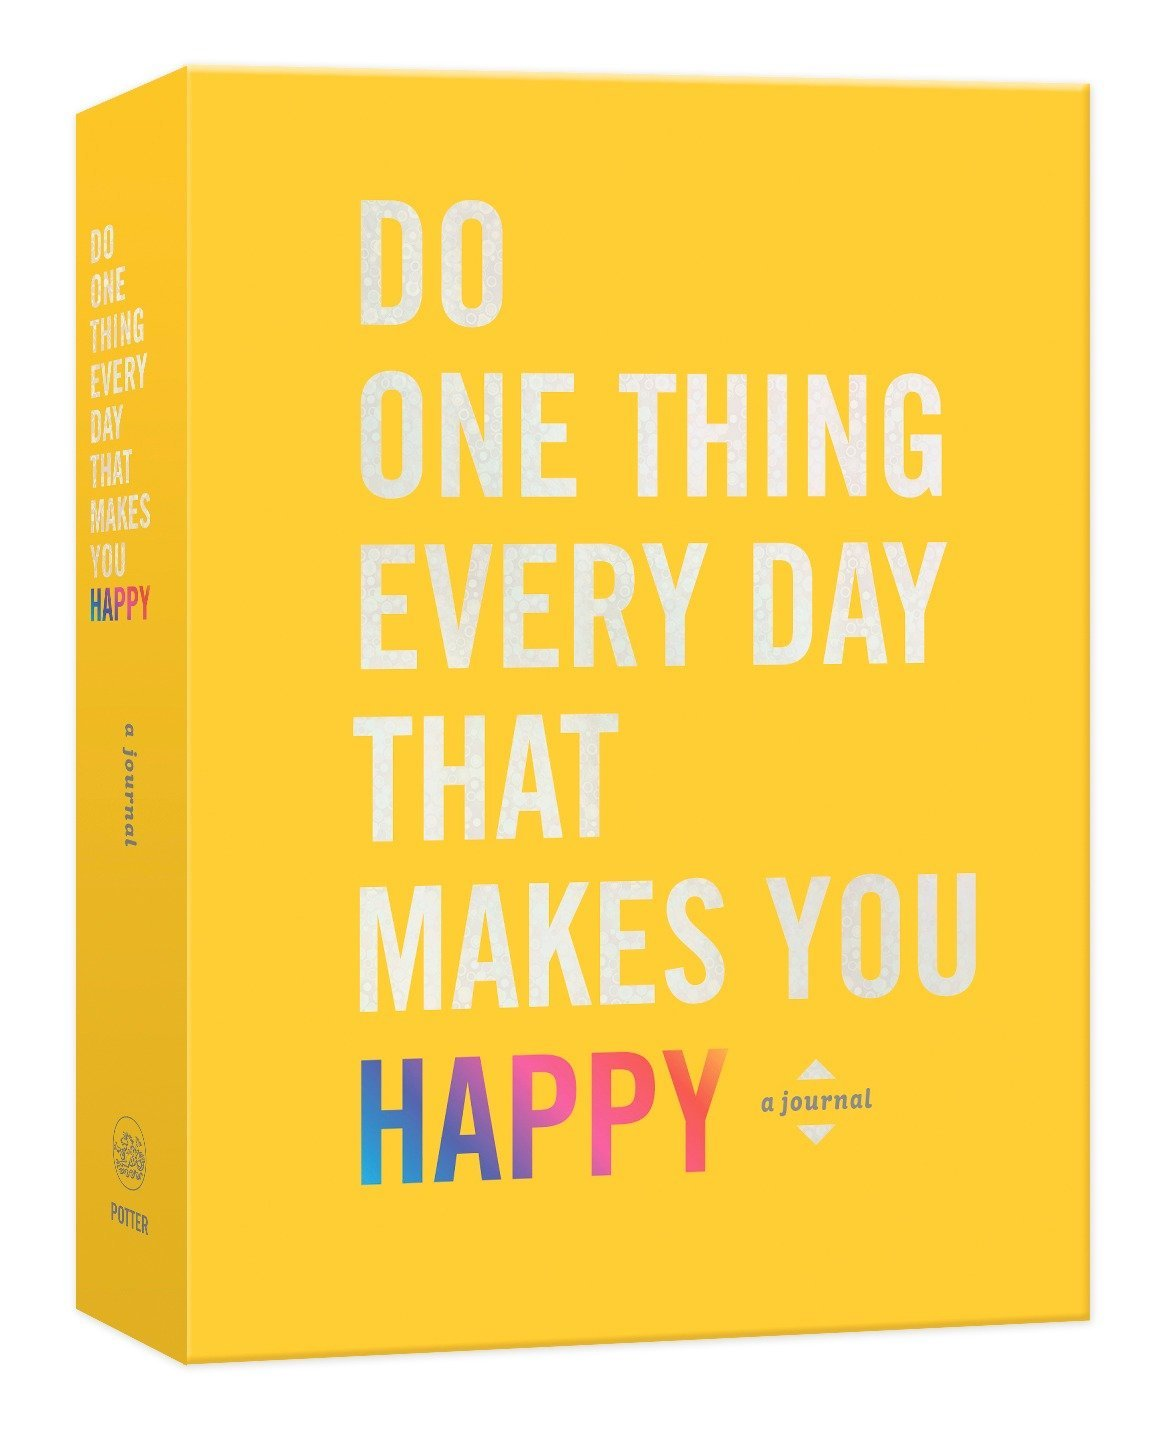 Do One thing Every Day To Make You Happy